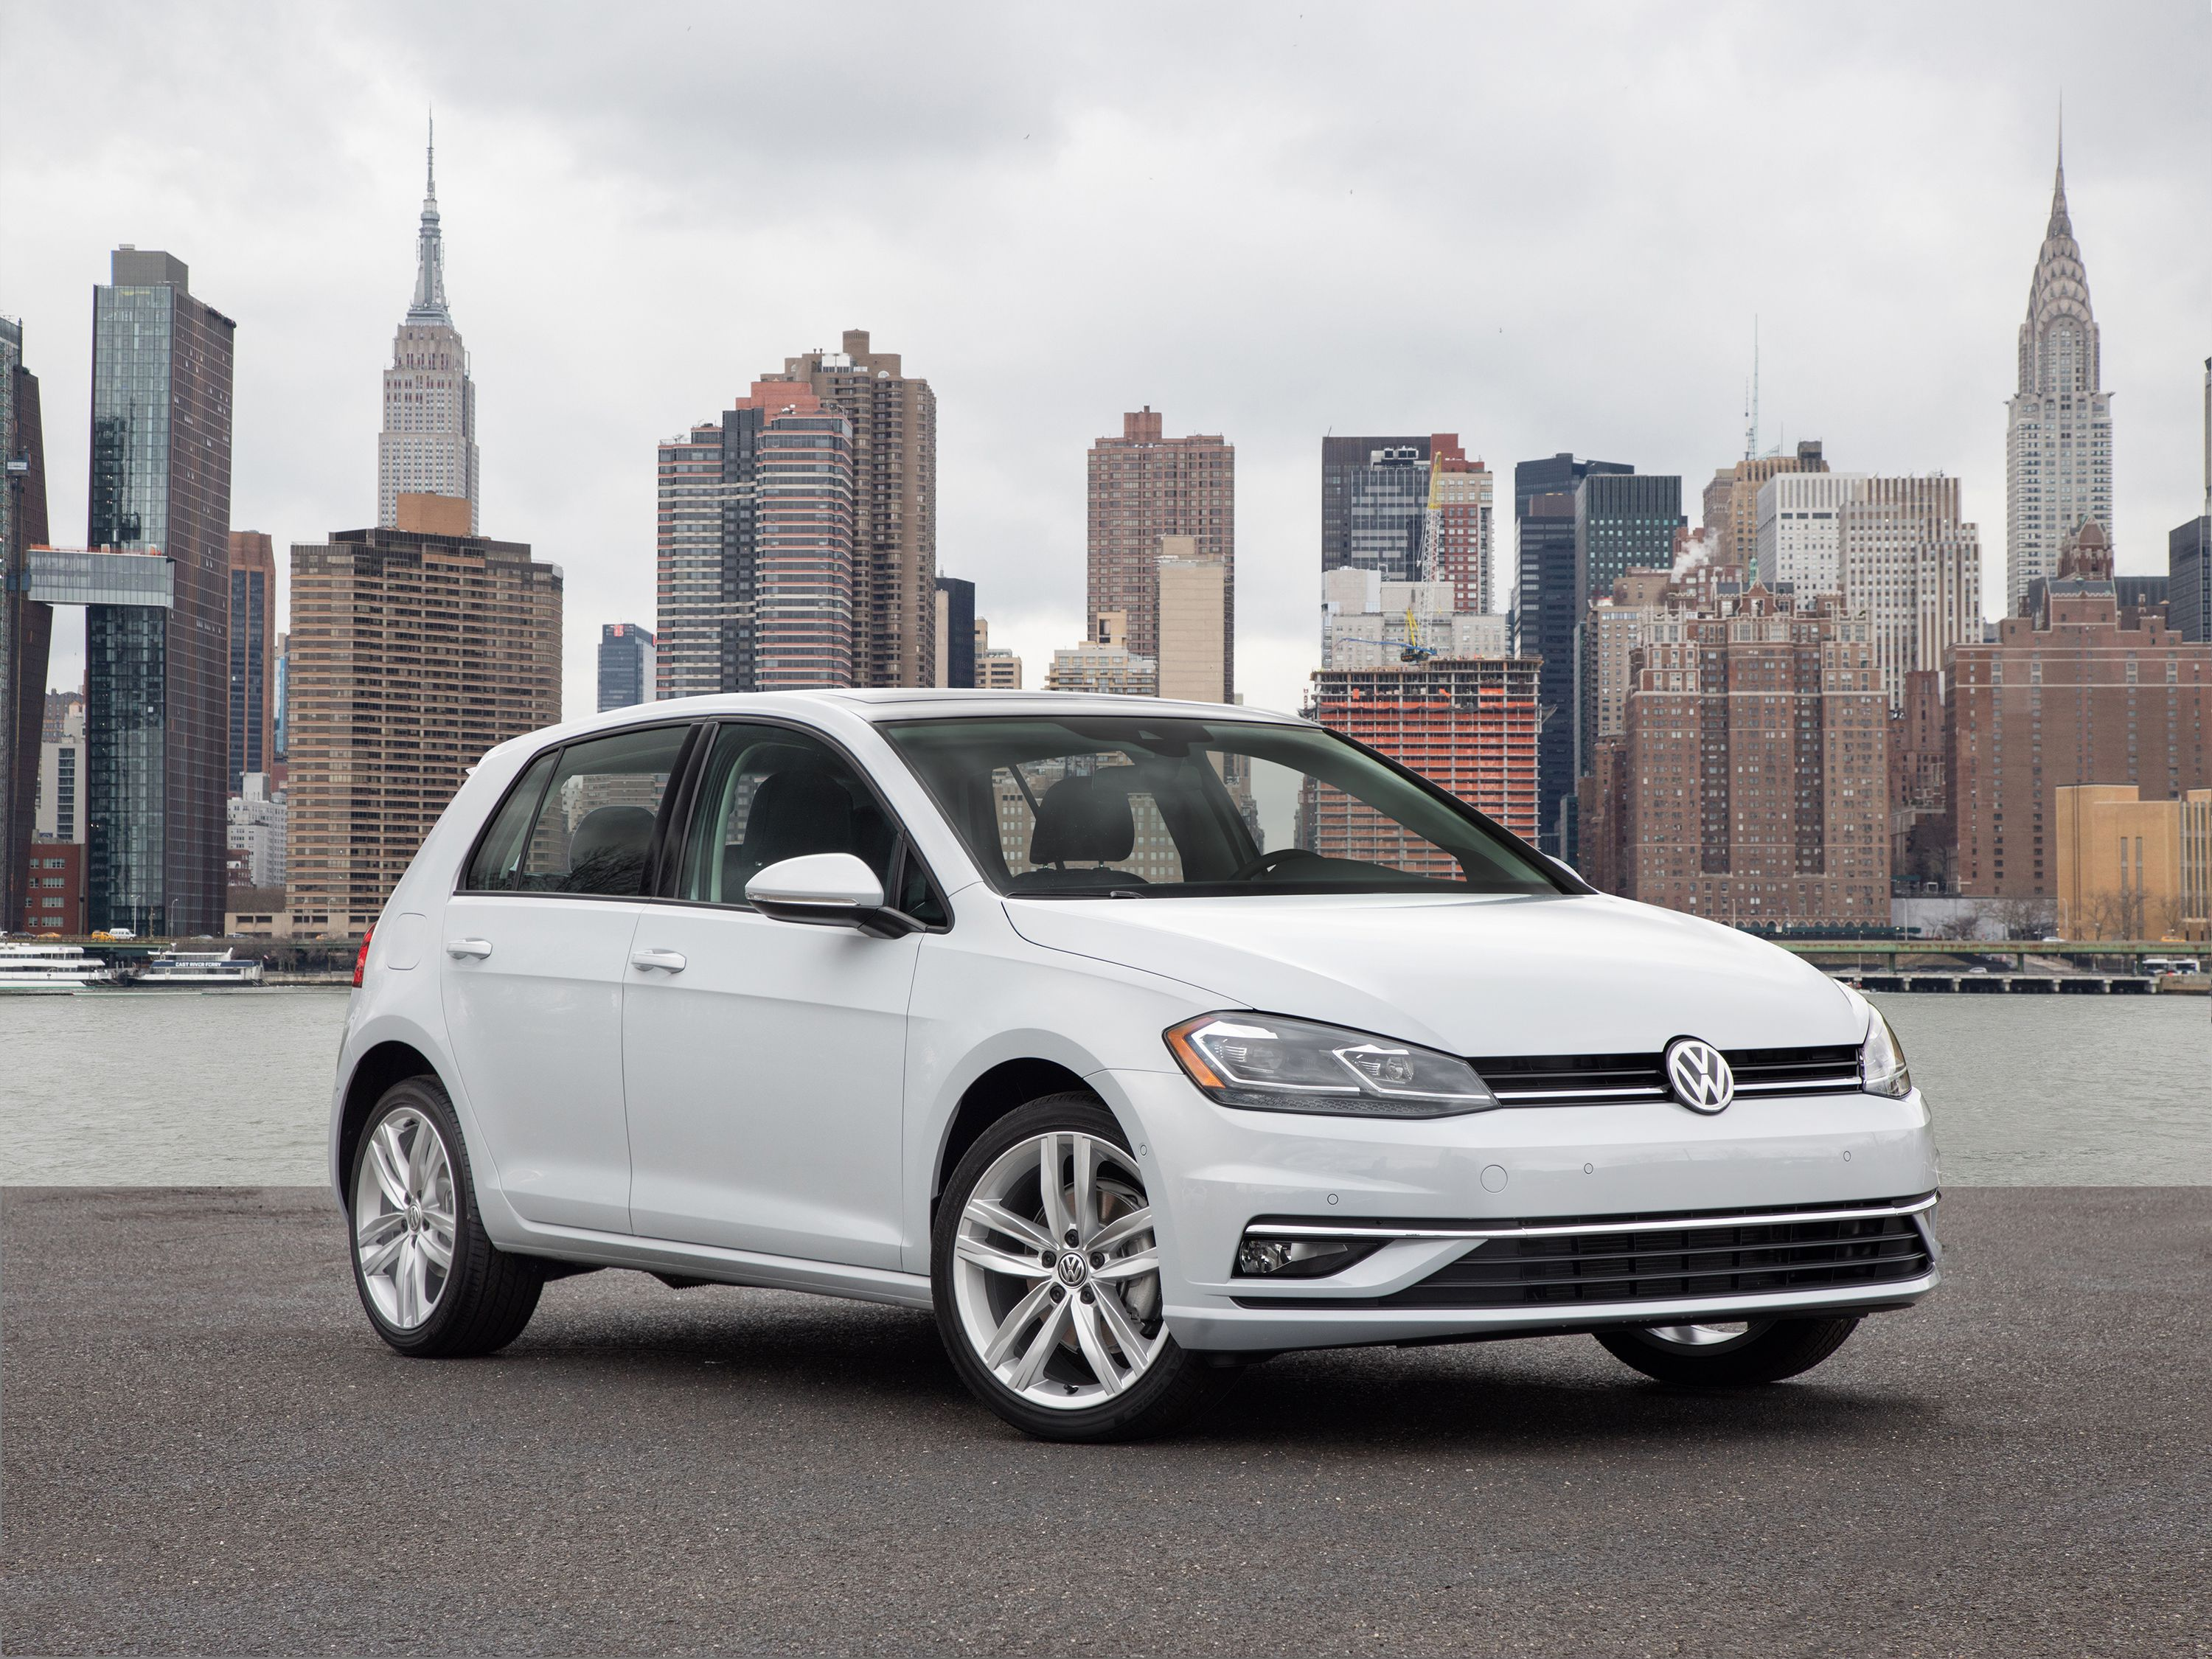 Reviewing The Vw Brand S Driver Assistance Technologies Heritage